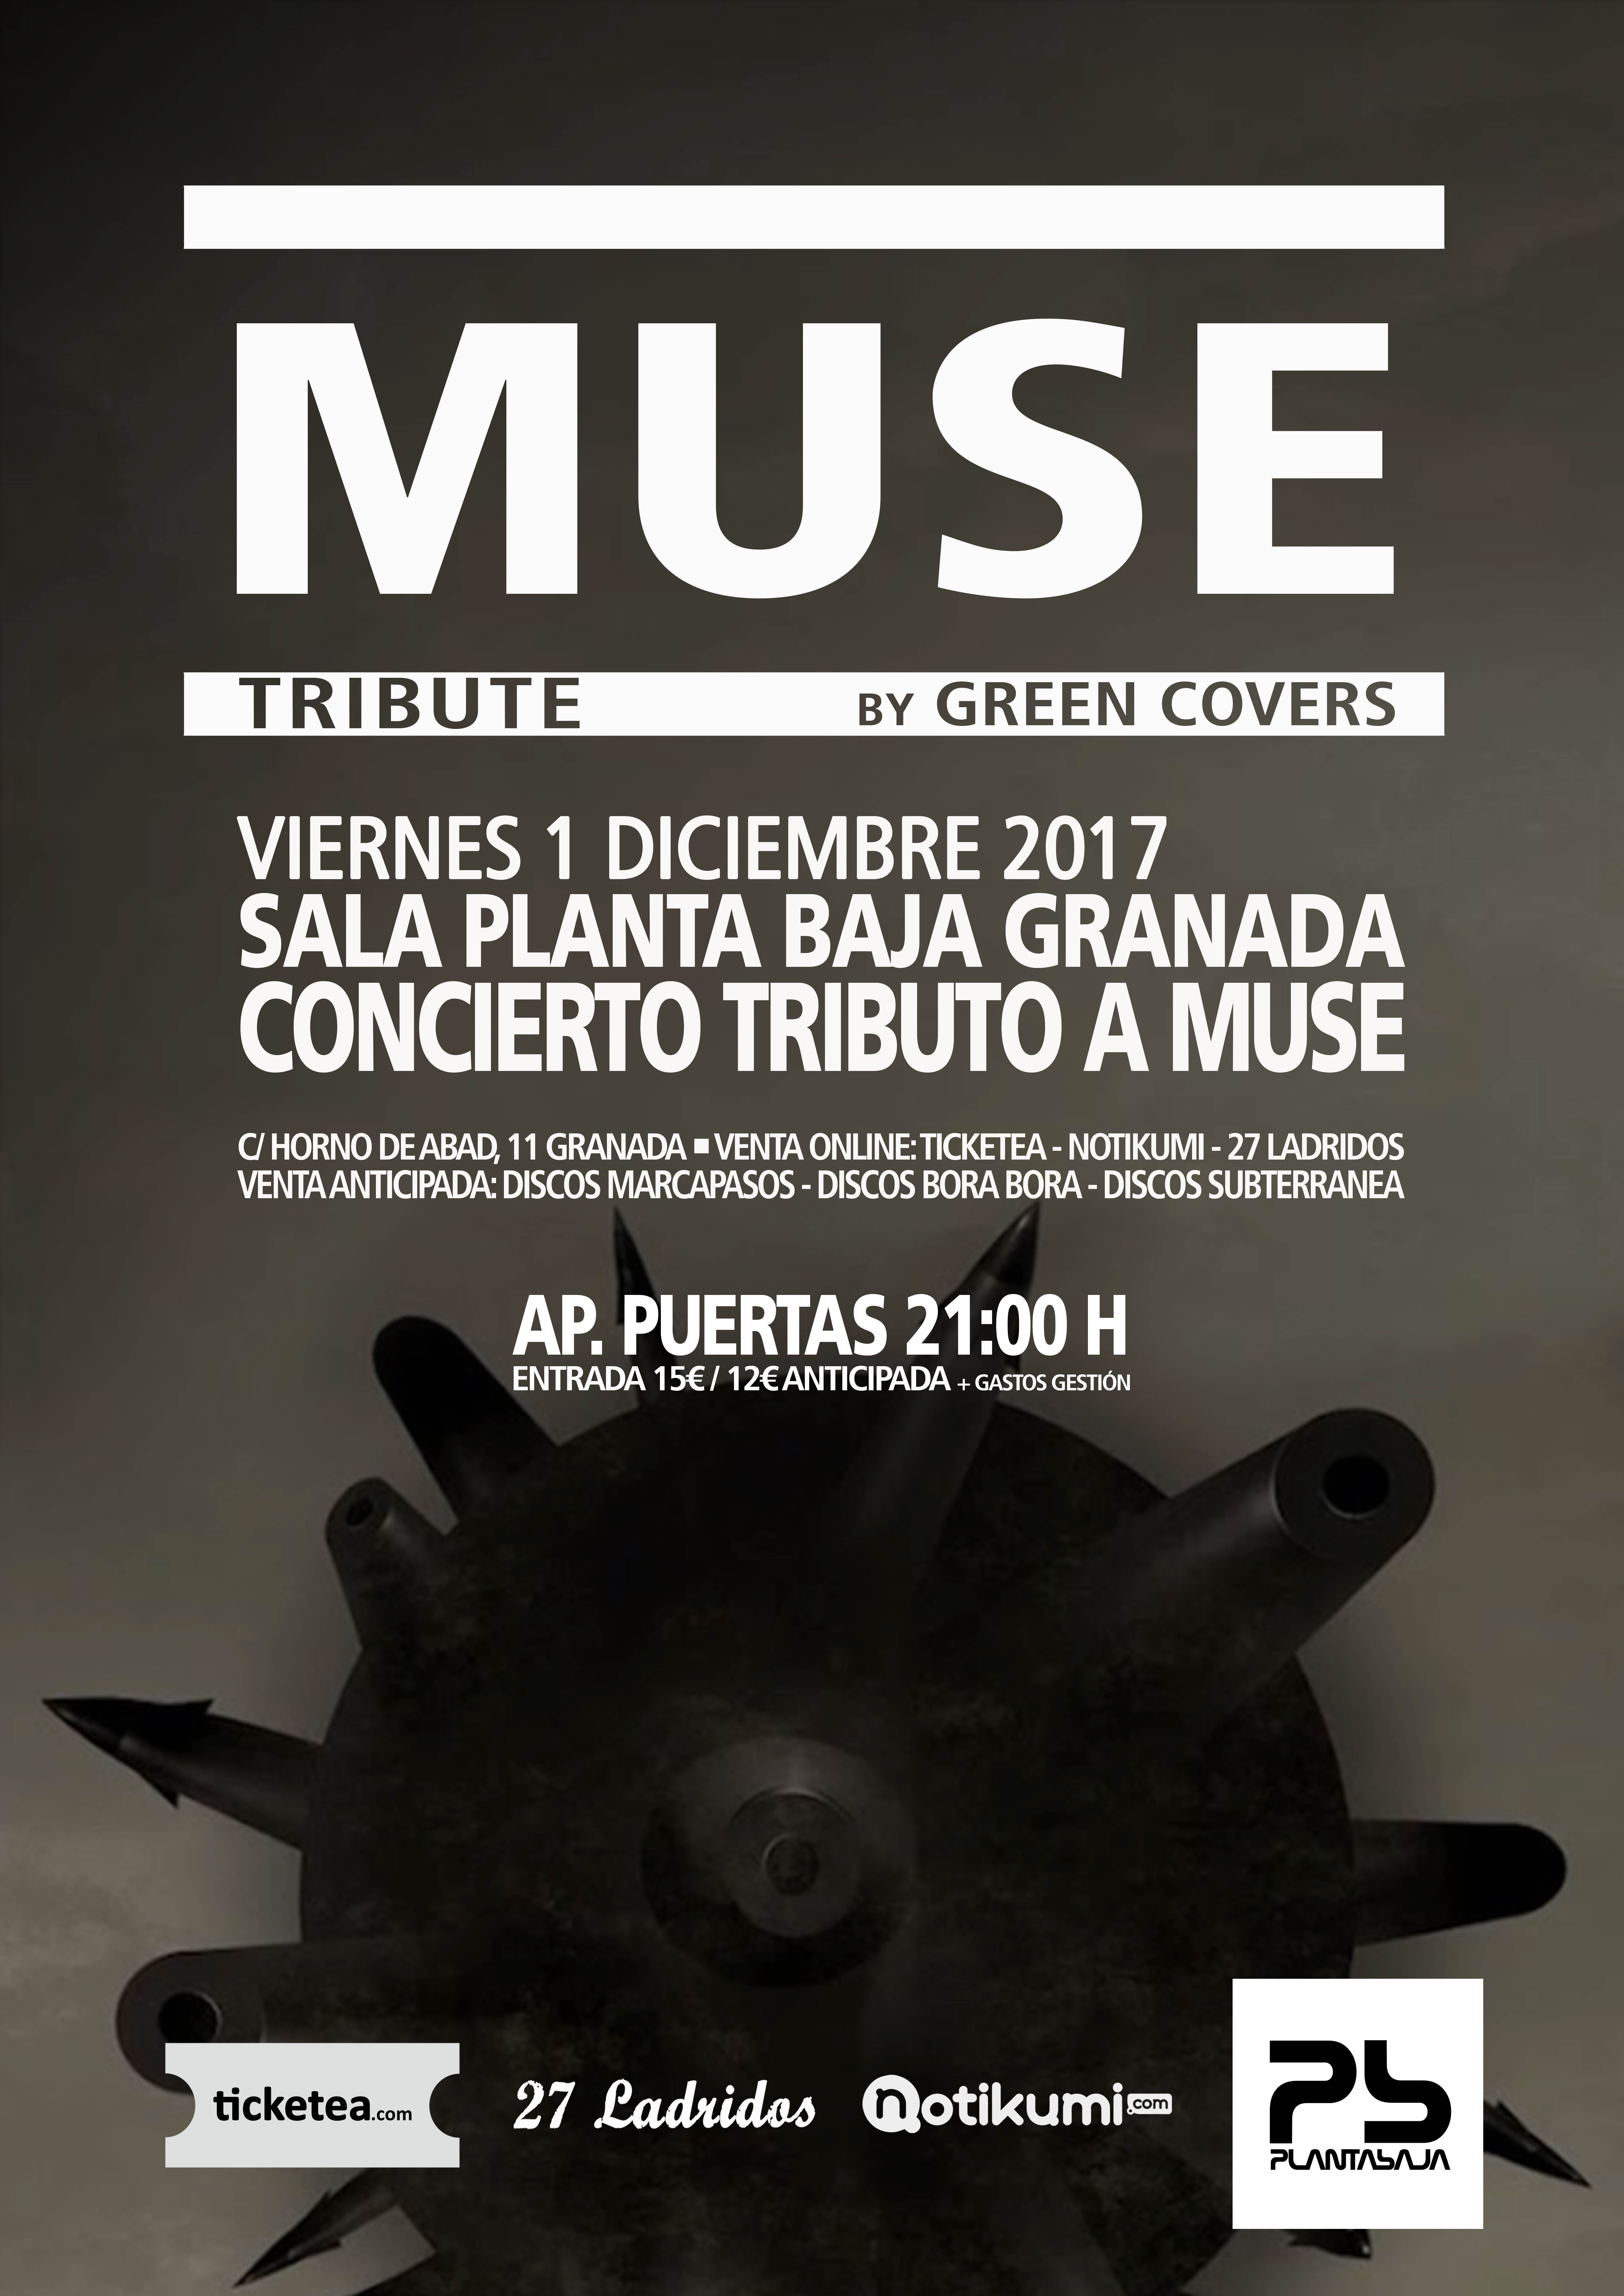 muse tribute green covers granada